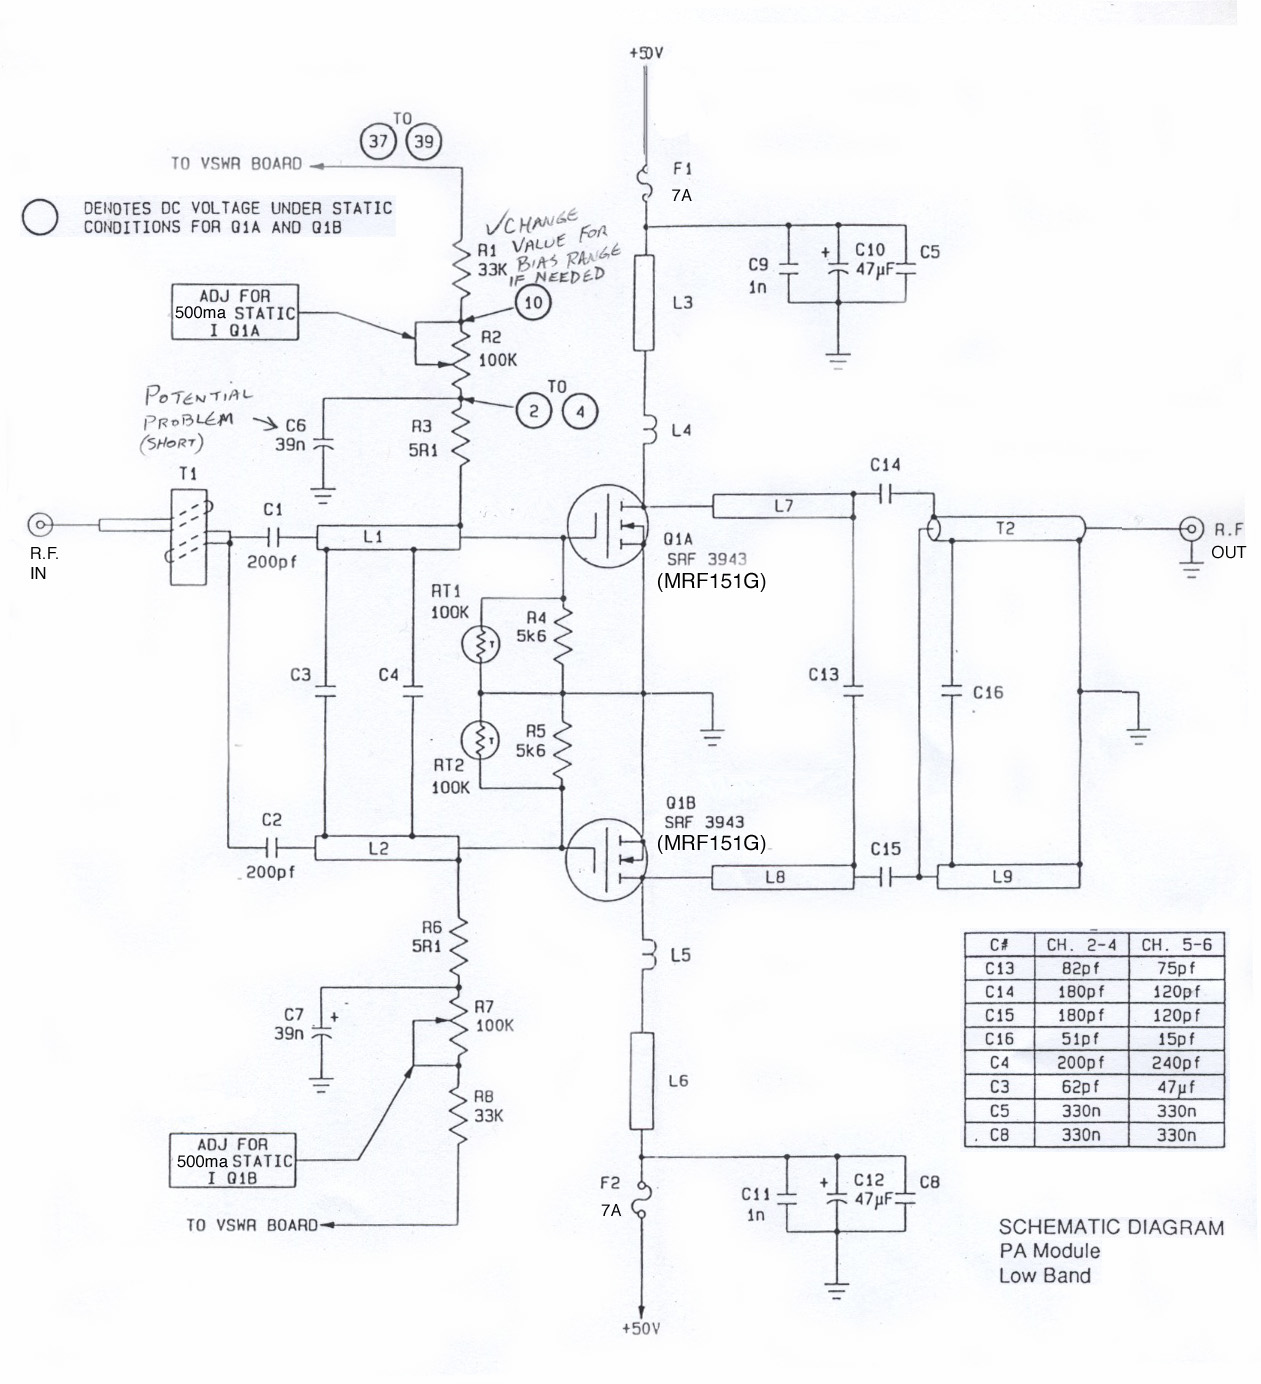 Fet Kilowatt Amp Is Set To The Value Indicated In Schematic Then Amplifier This Diagram Of One Active Device Section Not Shown Are All Passive Stripline Splitters And Combiners That